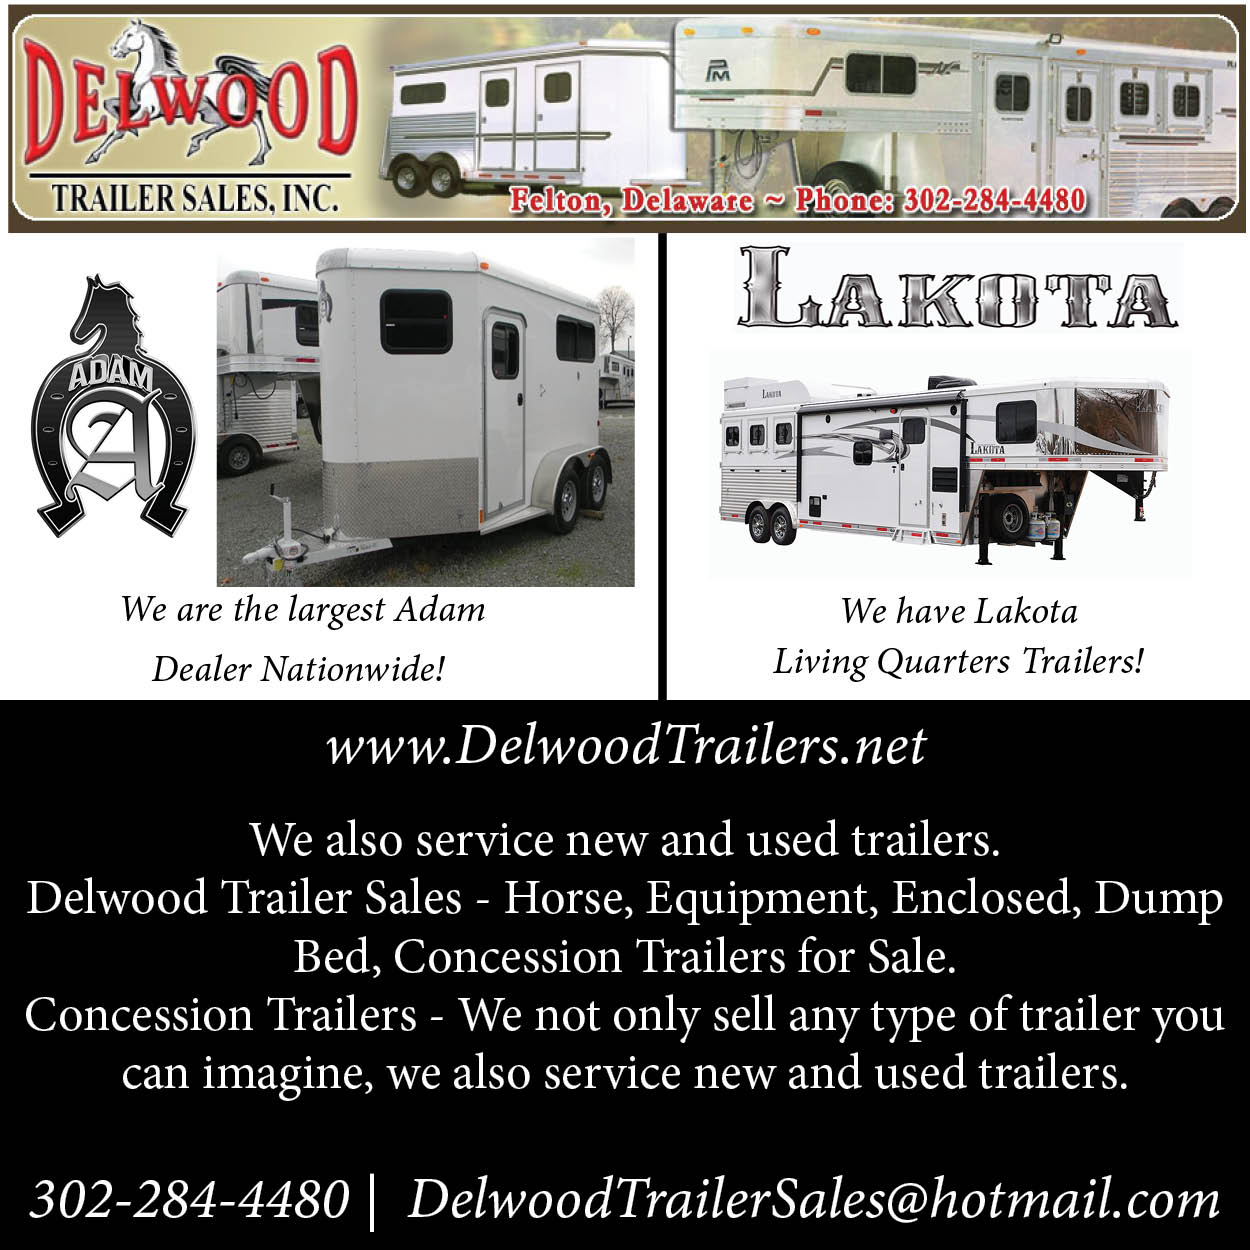 Delwood Trailers